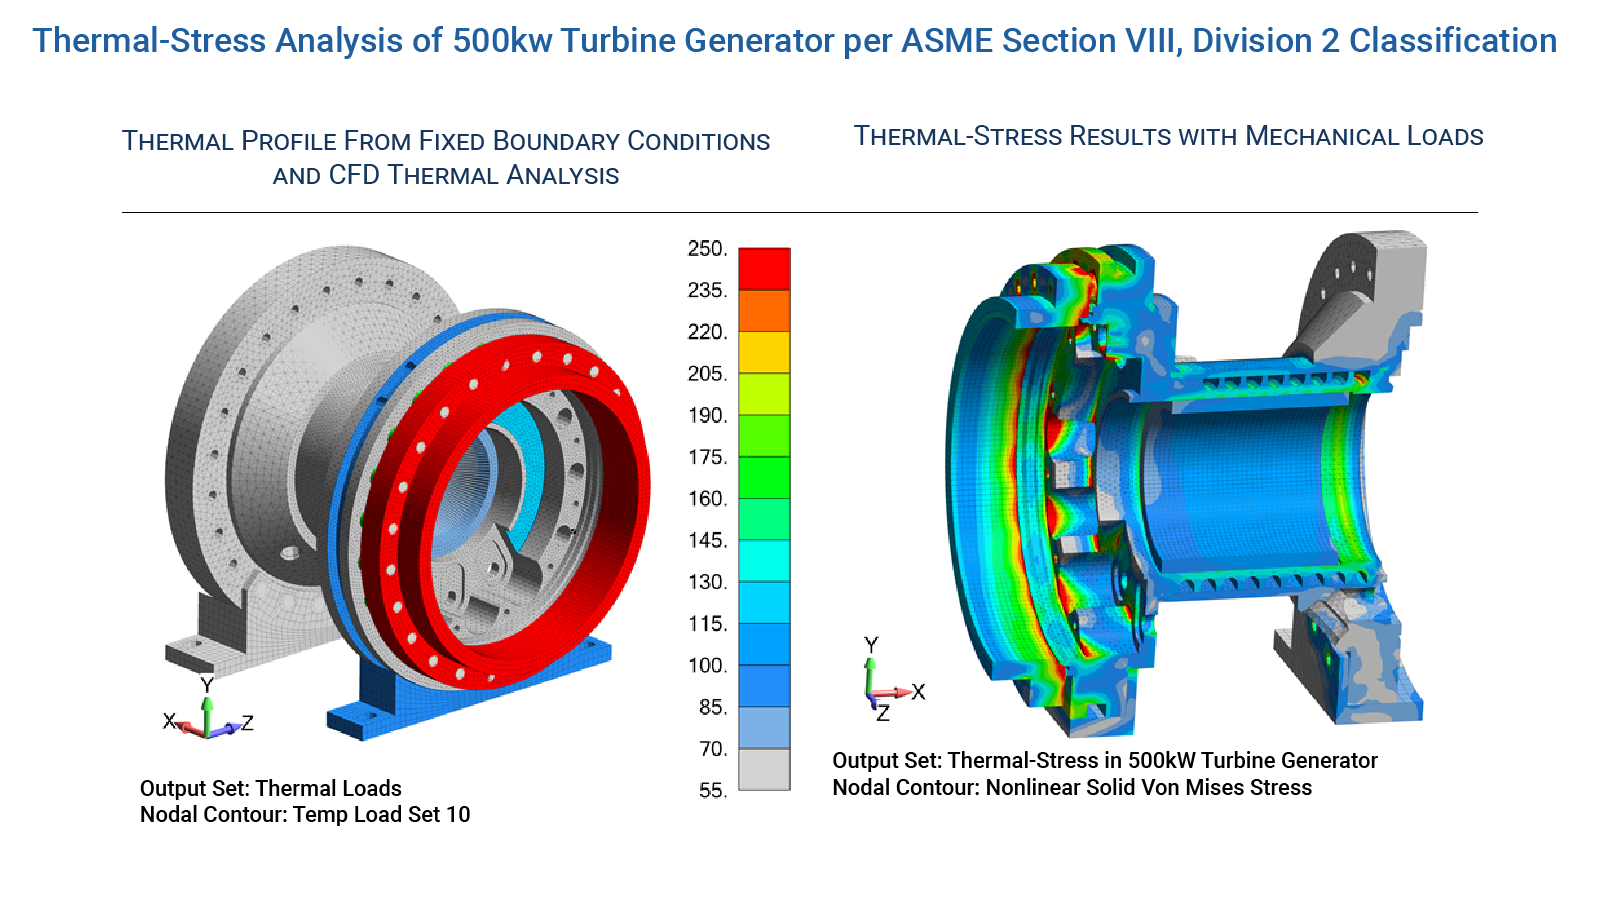 Thermal-Stress Analysis of 500kw Turbine Generator - FEA Consulting Services